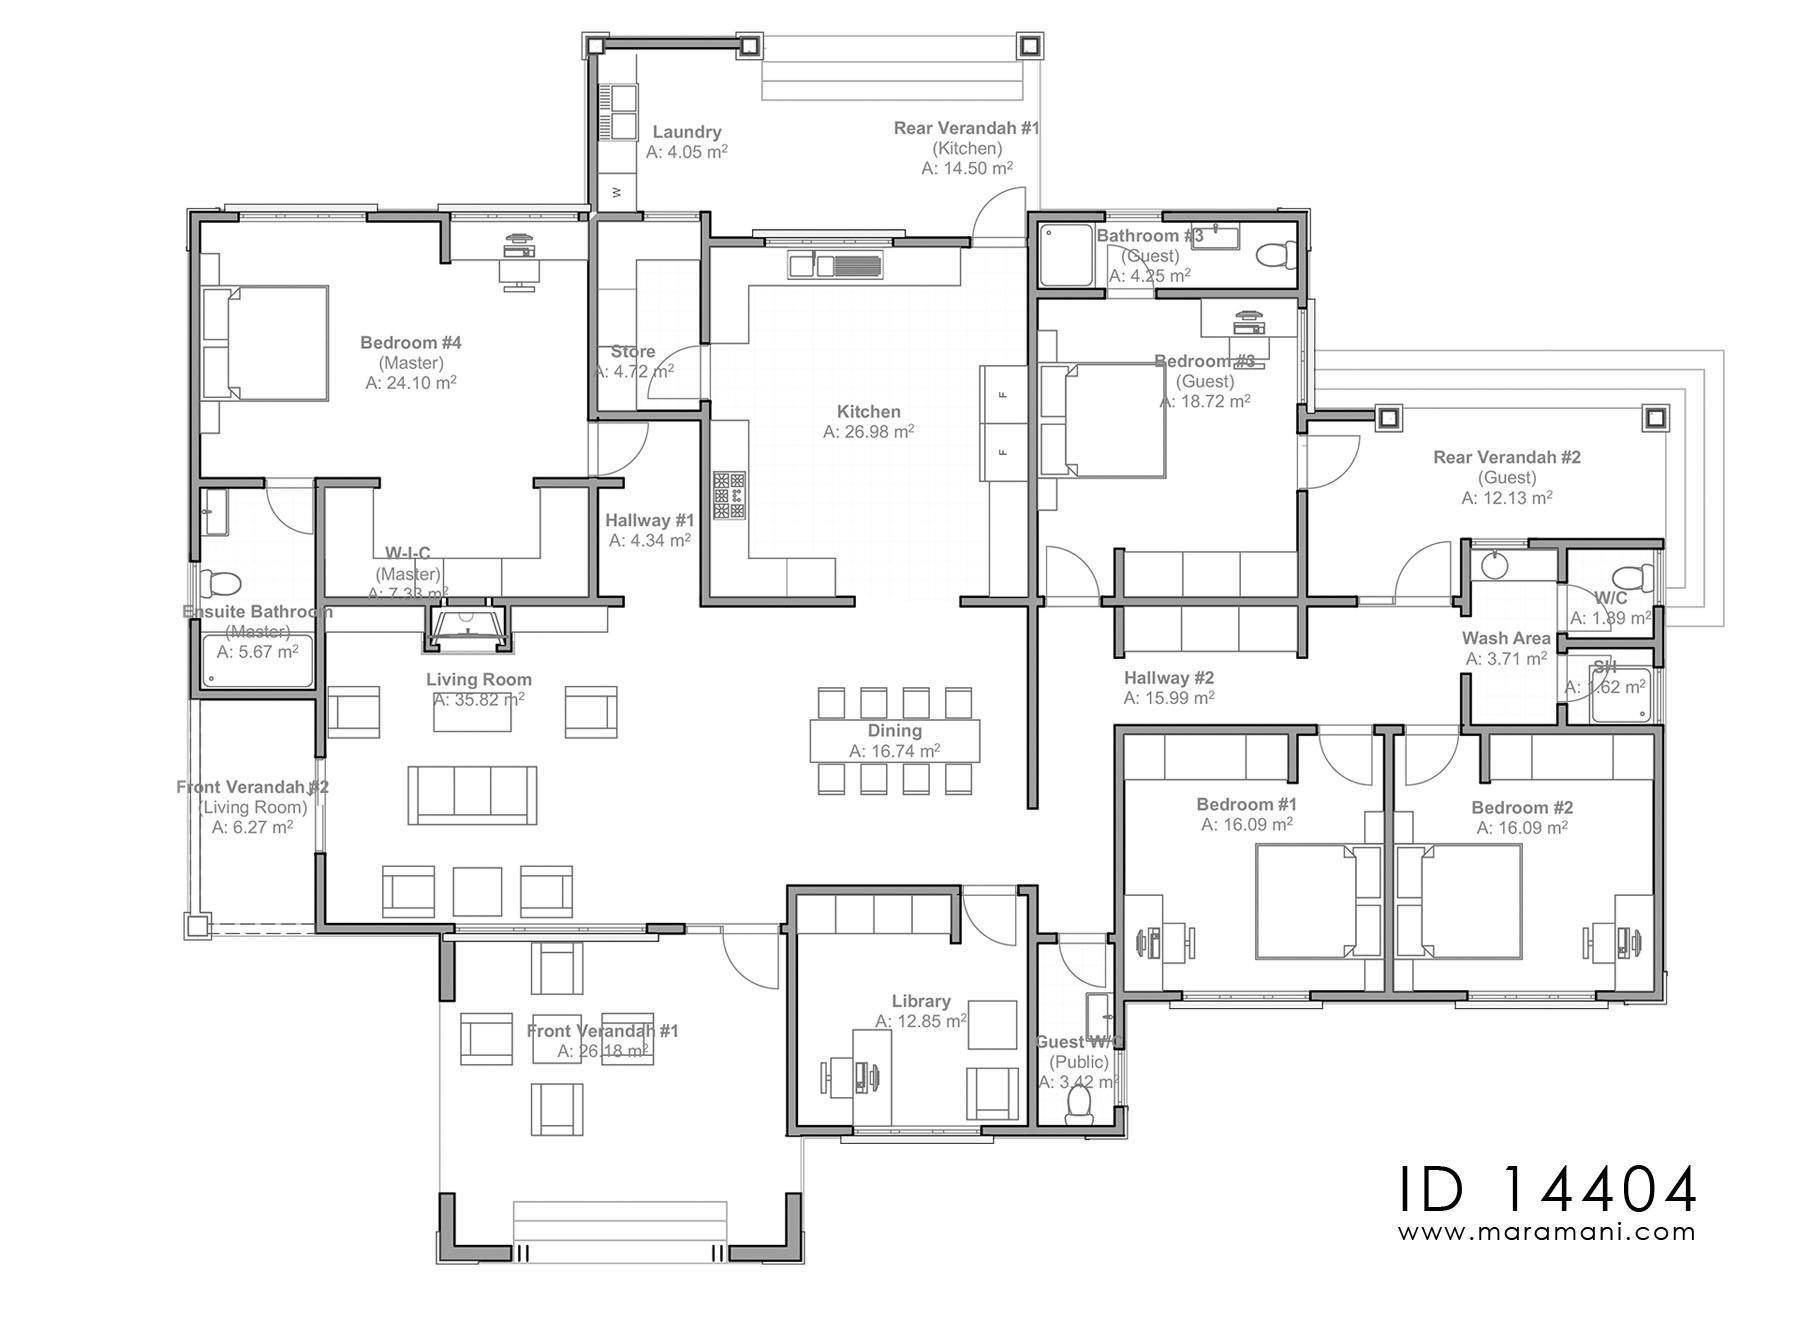 4 Bedroom House Plan Id 14404 House Plans By Maramani 4 Bedroom House Plans 4 Bedroom House House Plans